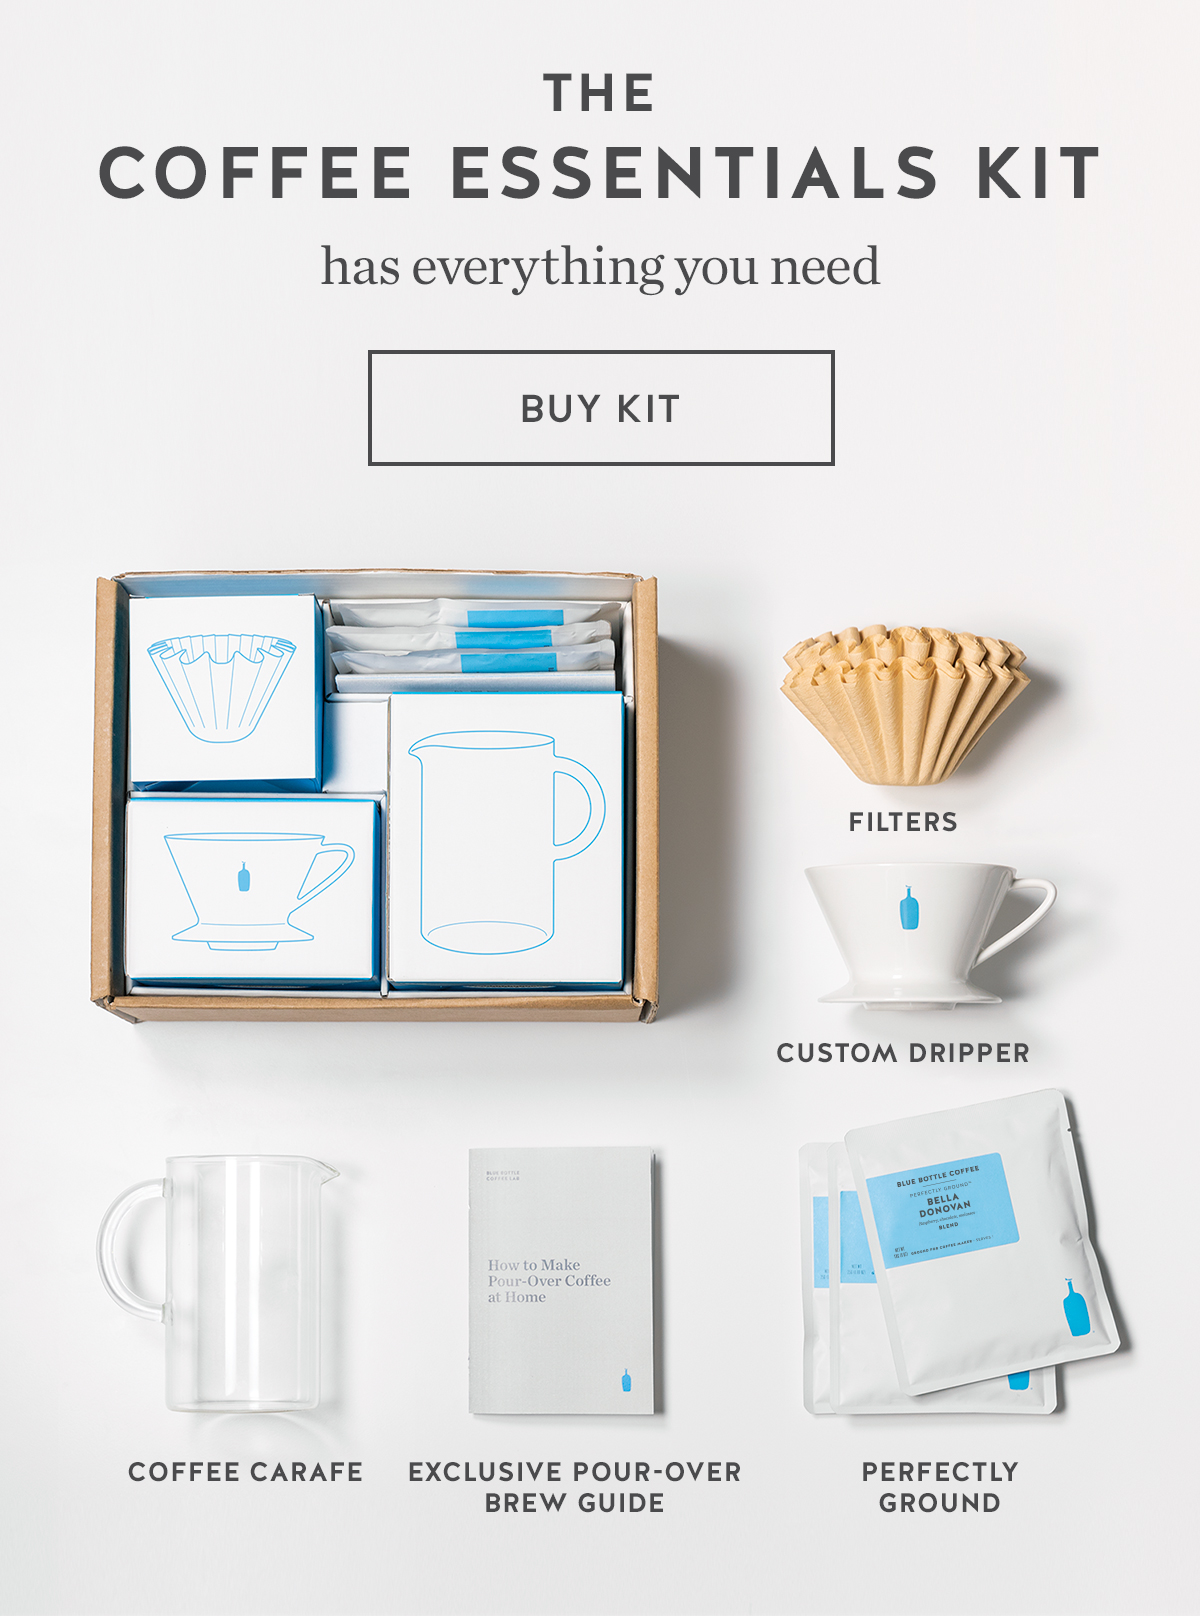 Blue Bottle Coffee New Year New Ways To Brew Milled